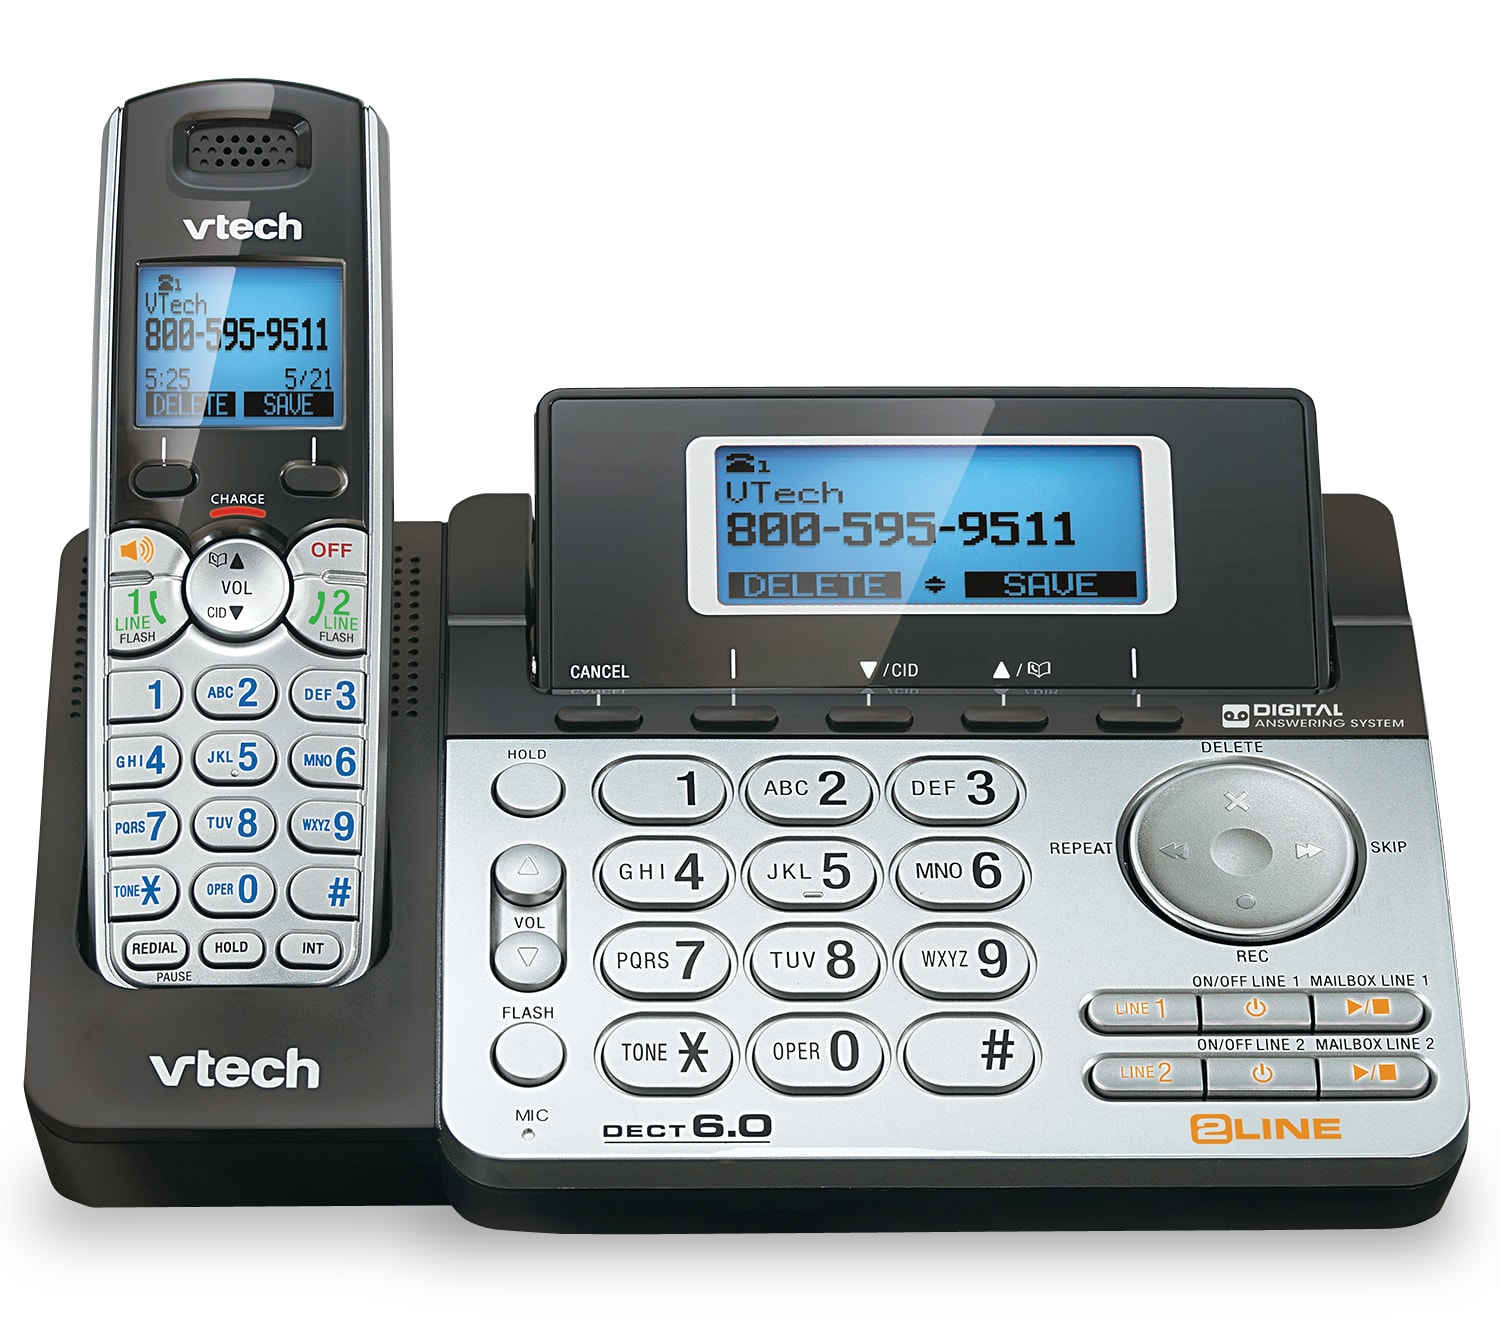 2-Line Answering System with Dual Caller ID/Call Waiting | DS6151 | VTech®  Cordless Phones